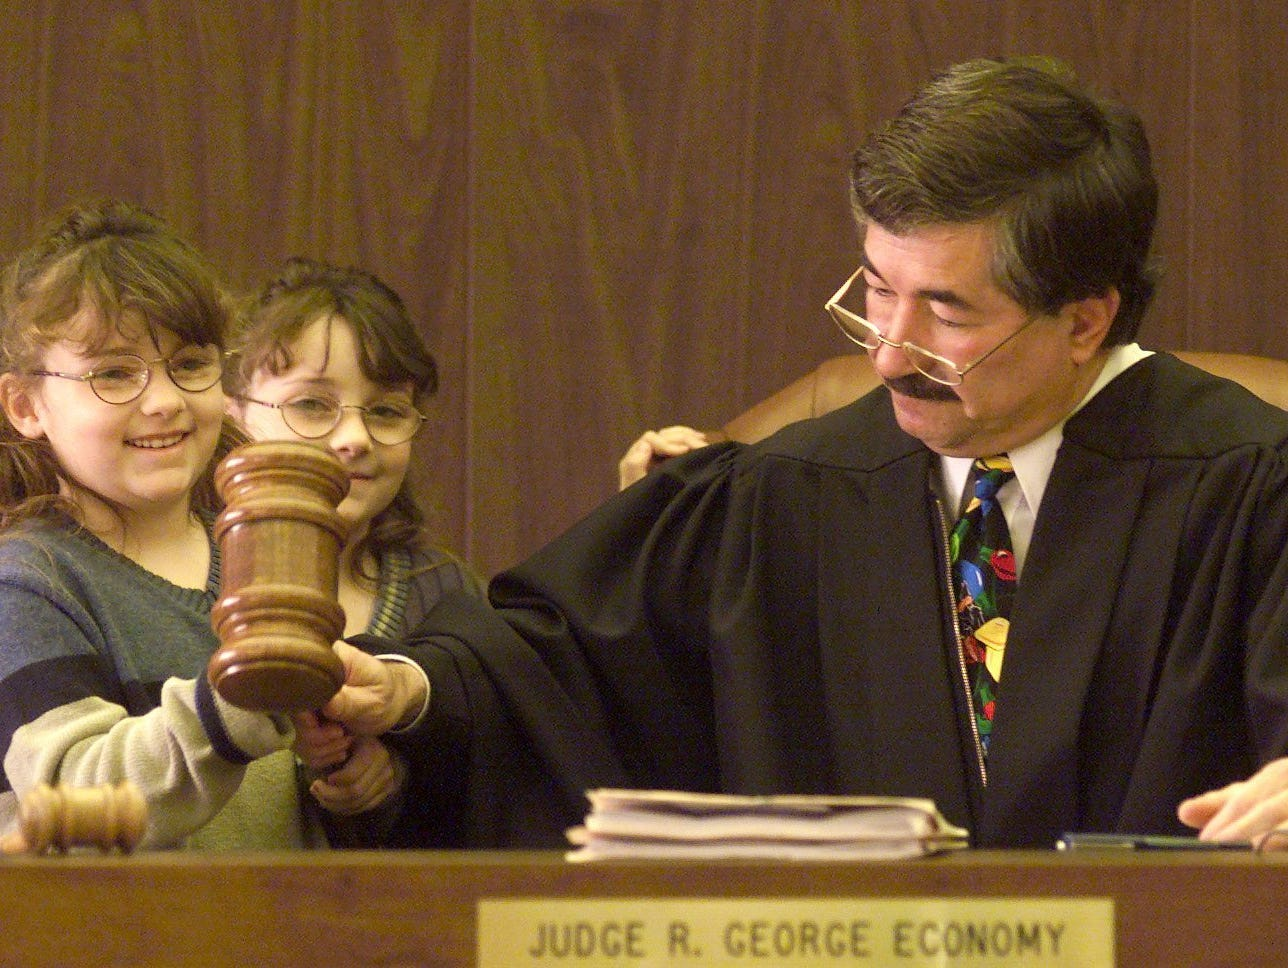 Judge George Economy gives Trisha Manko, 6, a hand with the over sized gavel to finalize the adoption of Trisha and her sister, Mariah, Dec. 23, 1999.